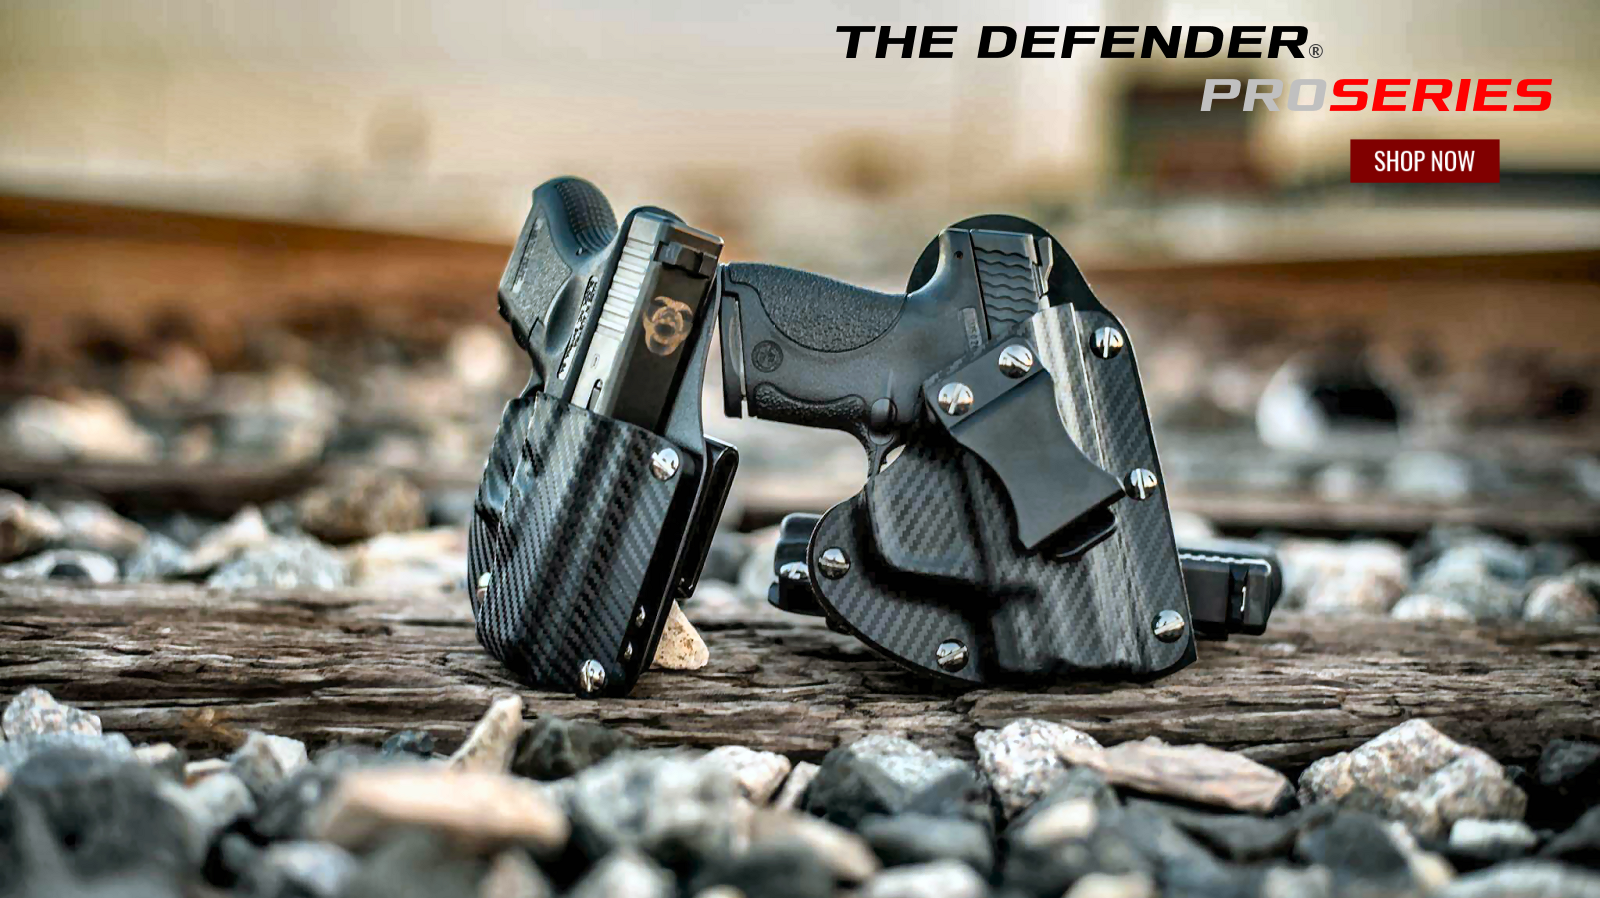 Hybrid Holsters - Designed For Minimalist Every Day Carry